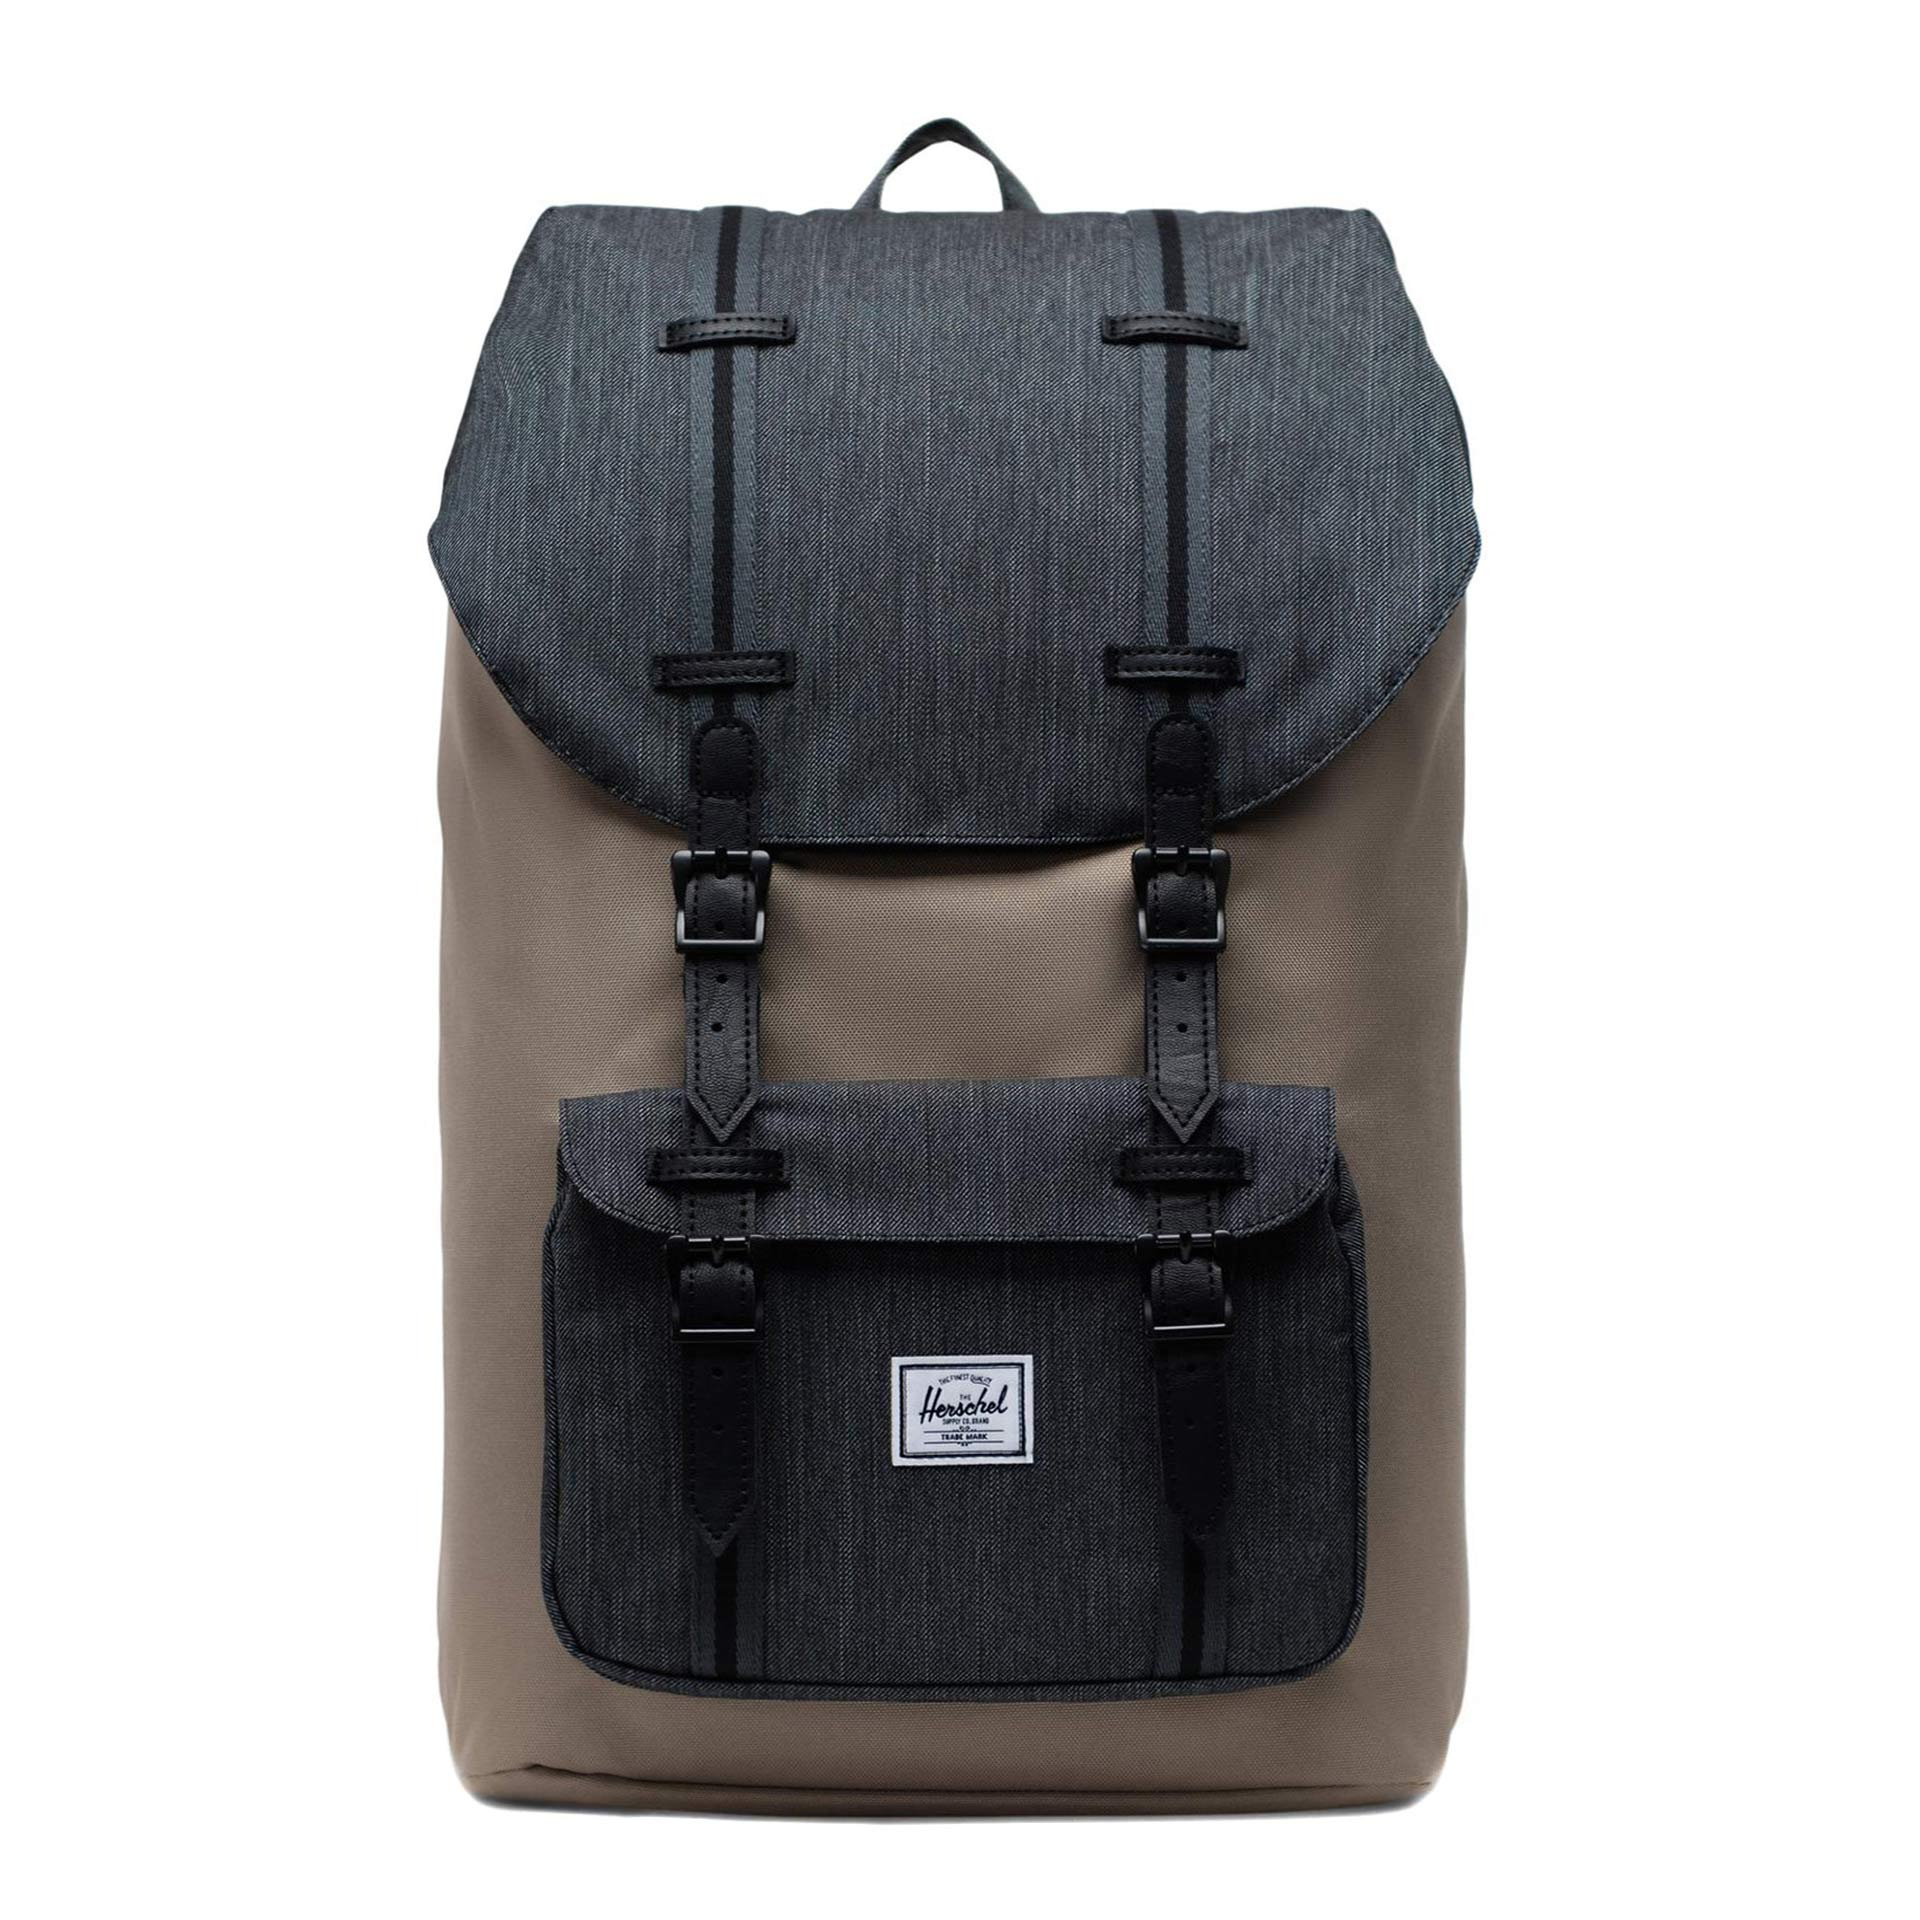 Herschel Little America Rucksack timberwolf/black Denim/black